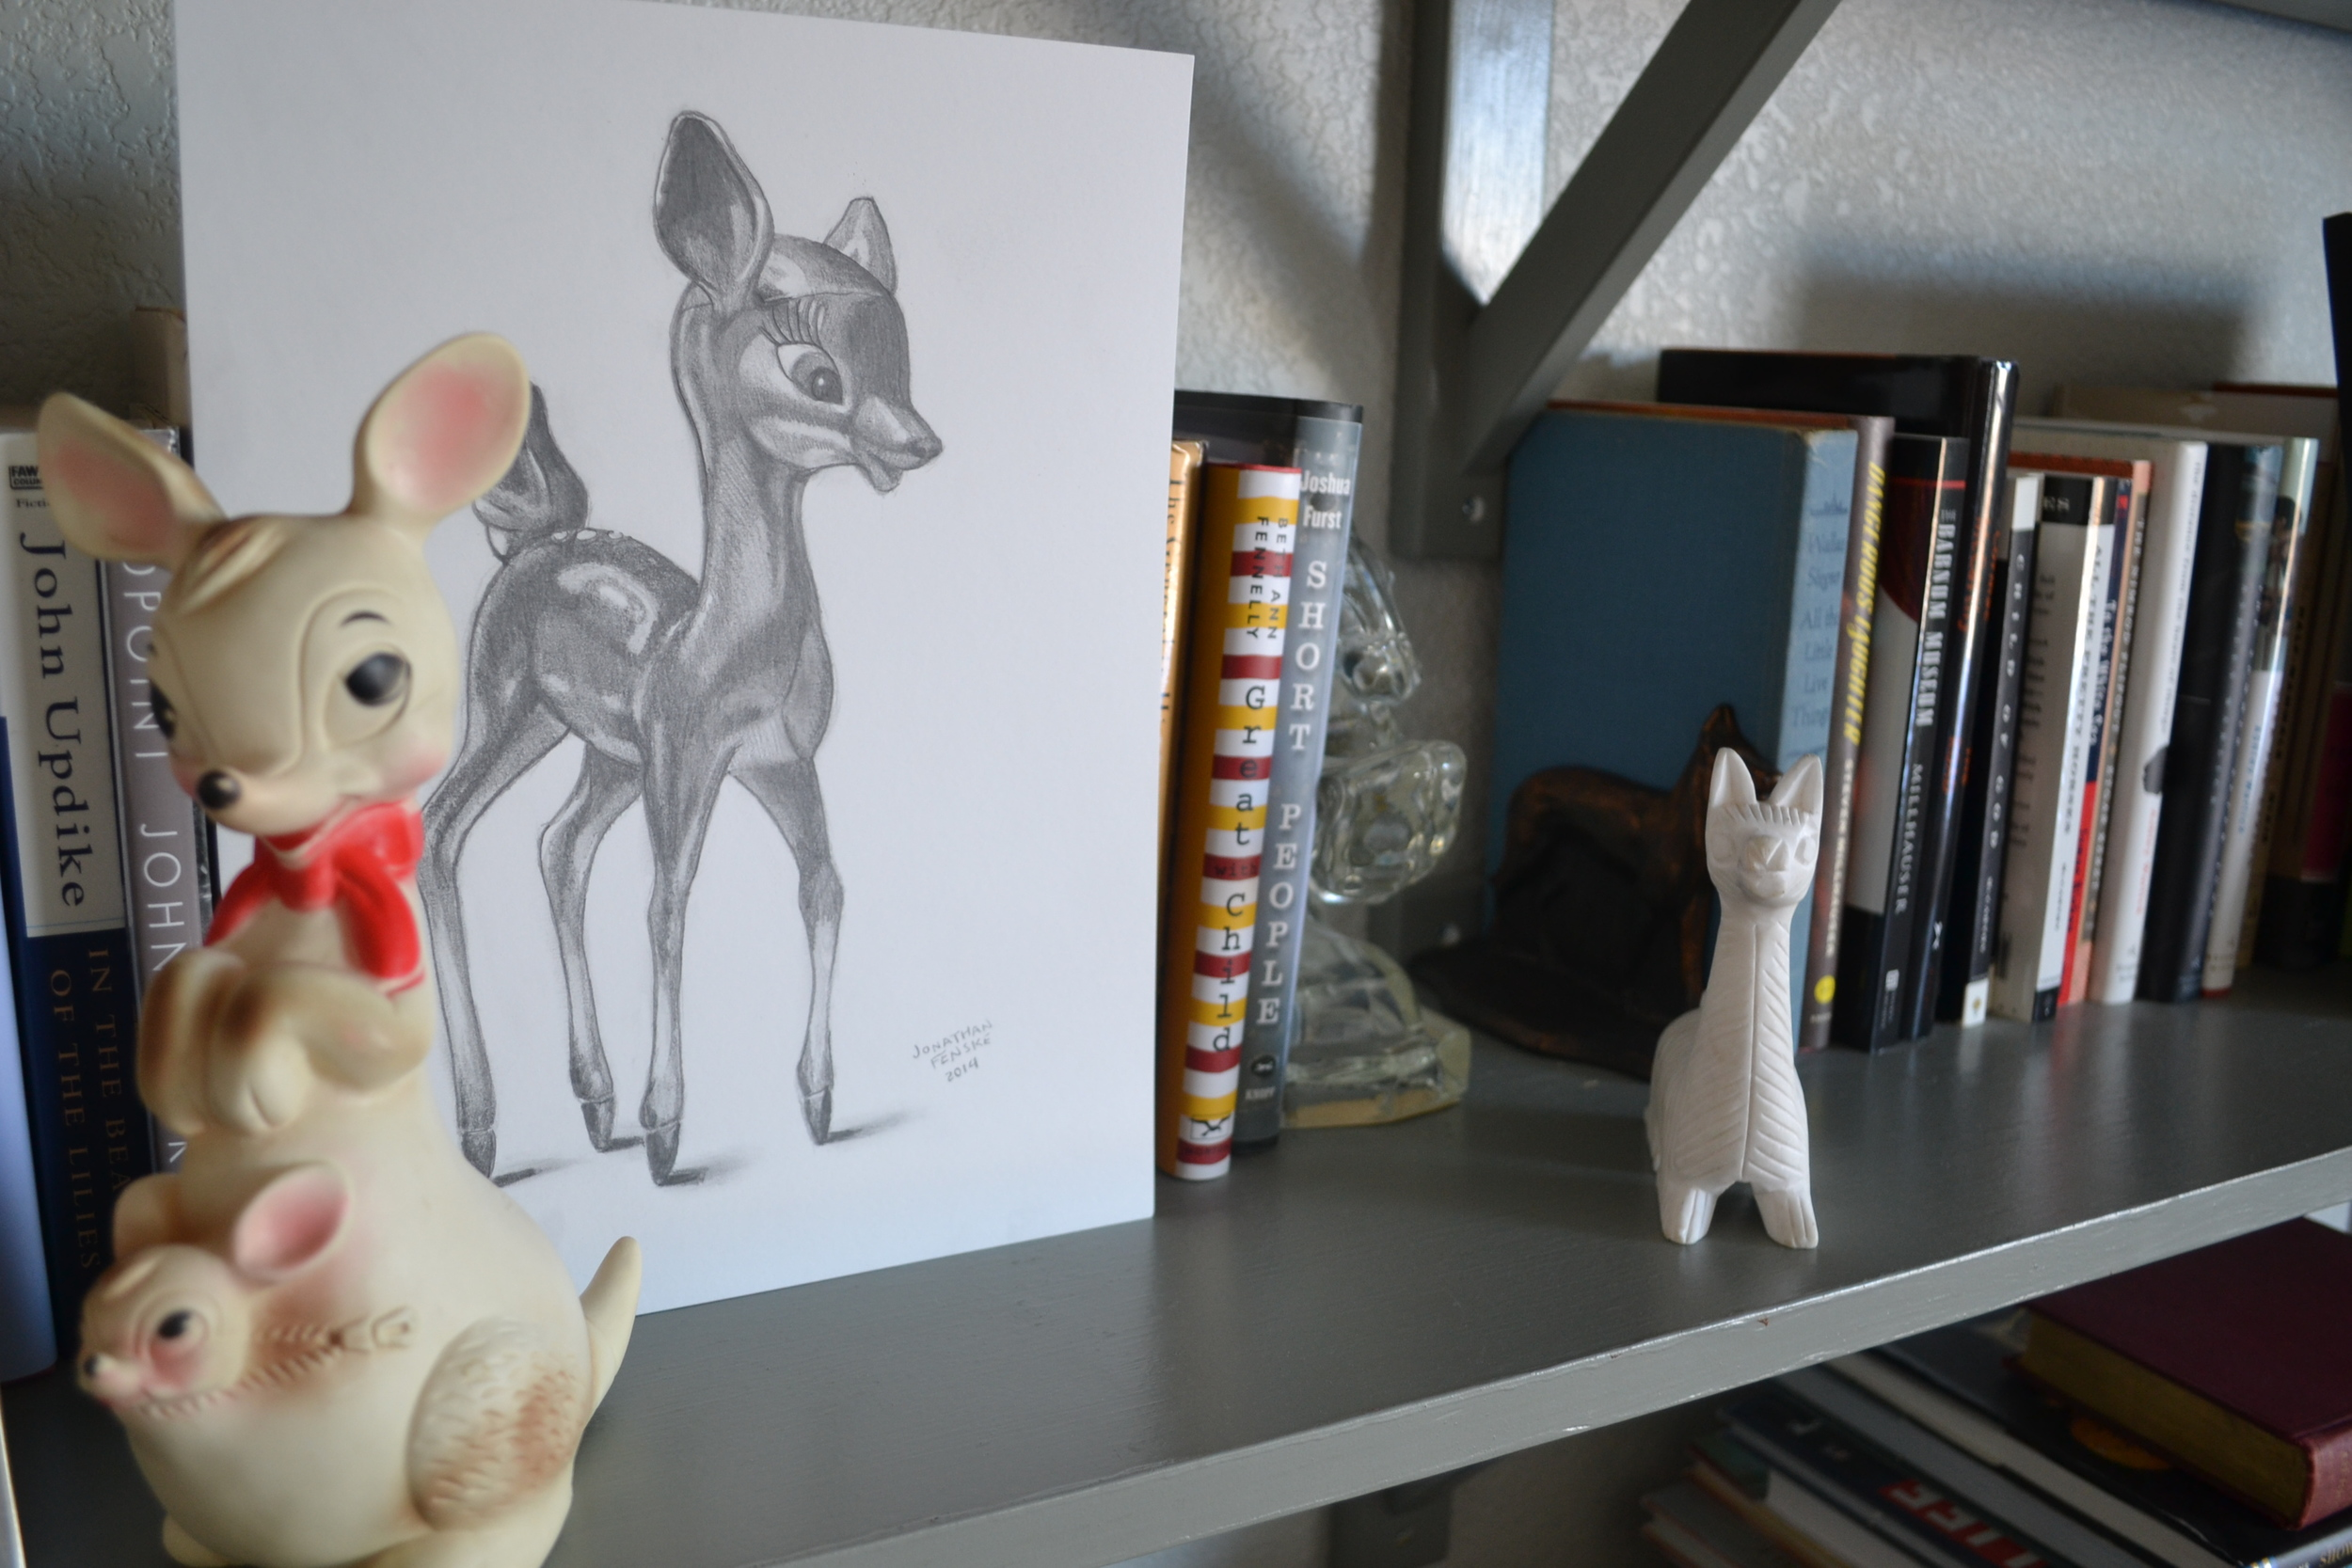 Jonathan Fenske's sketch of a 1950's deer figurine